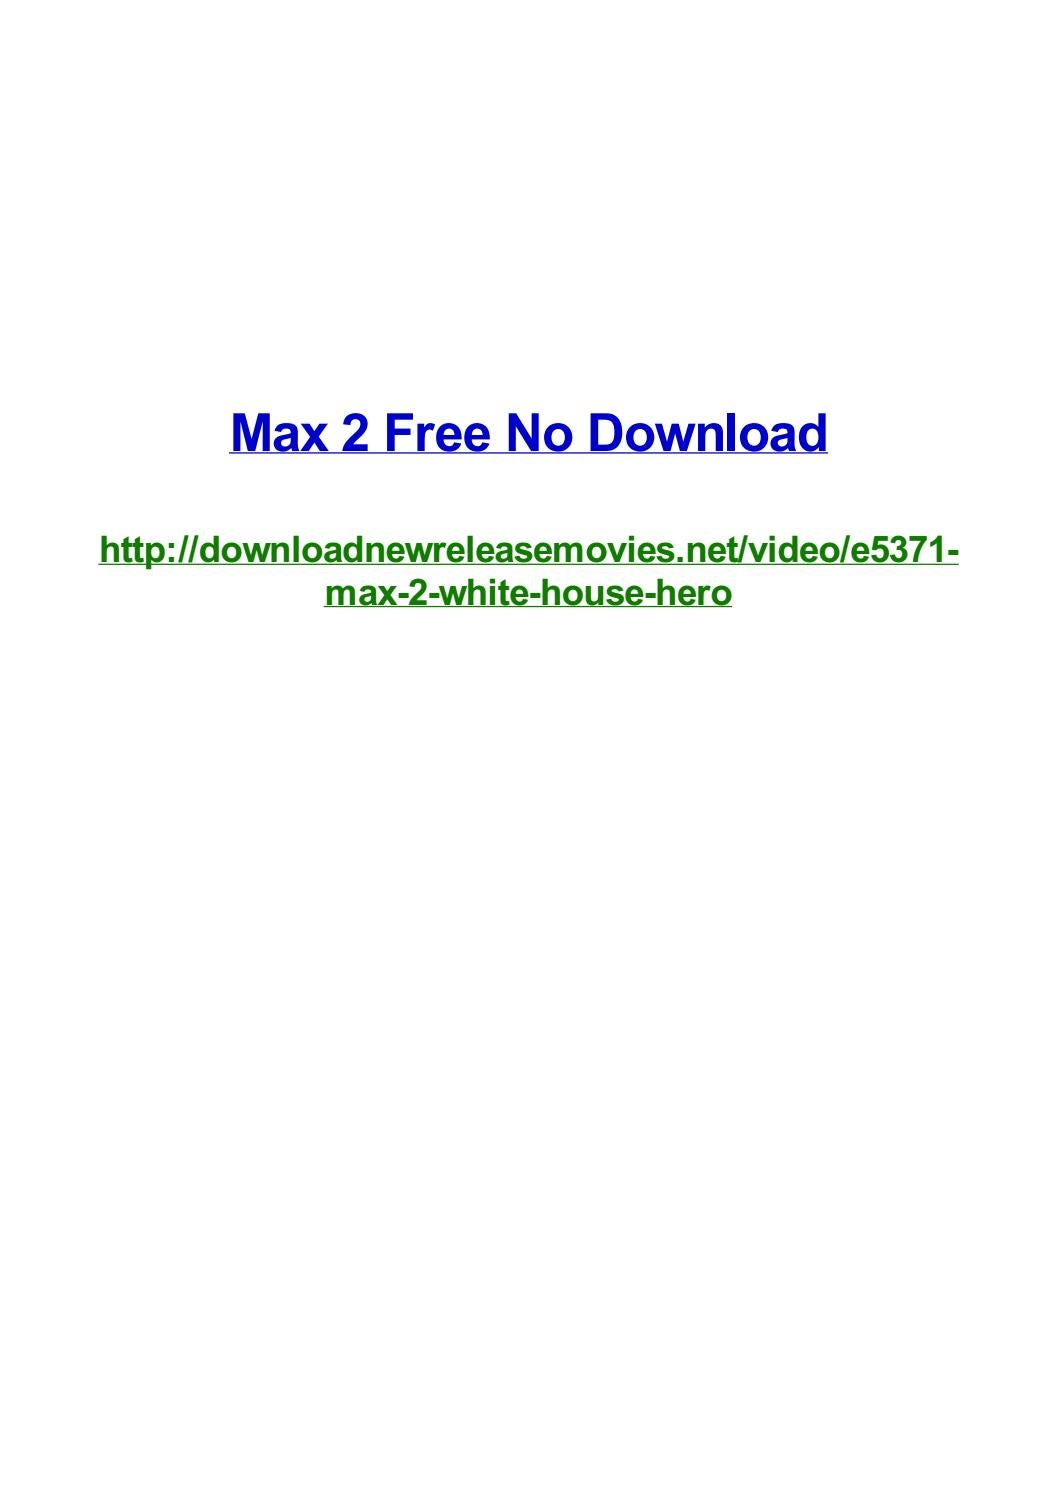 Max 2 Free No Download By Frank Seamons Issuu